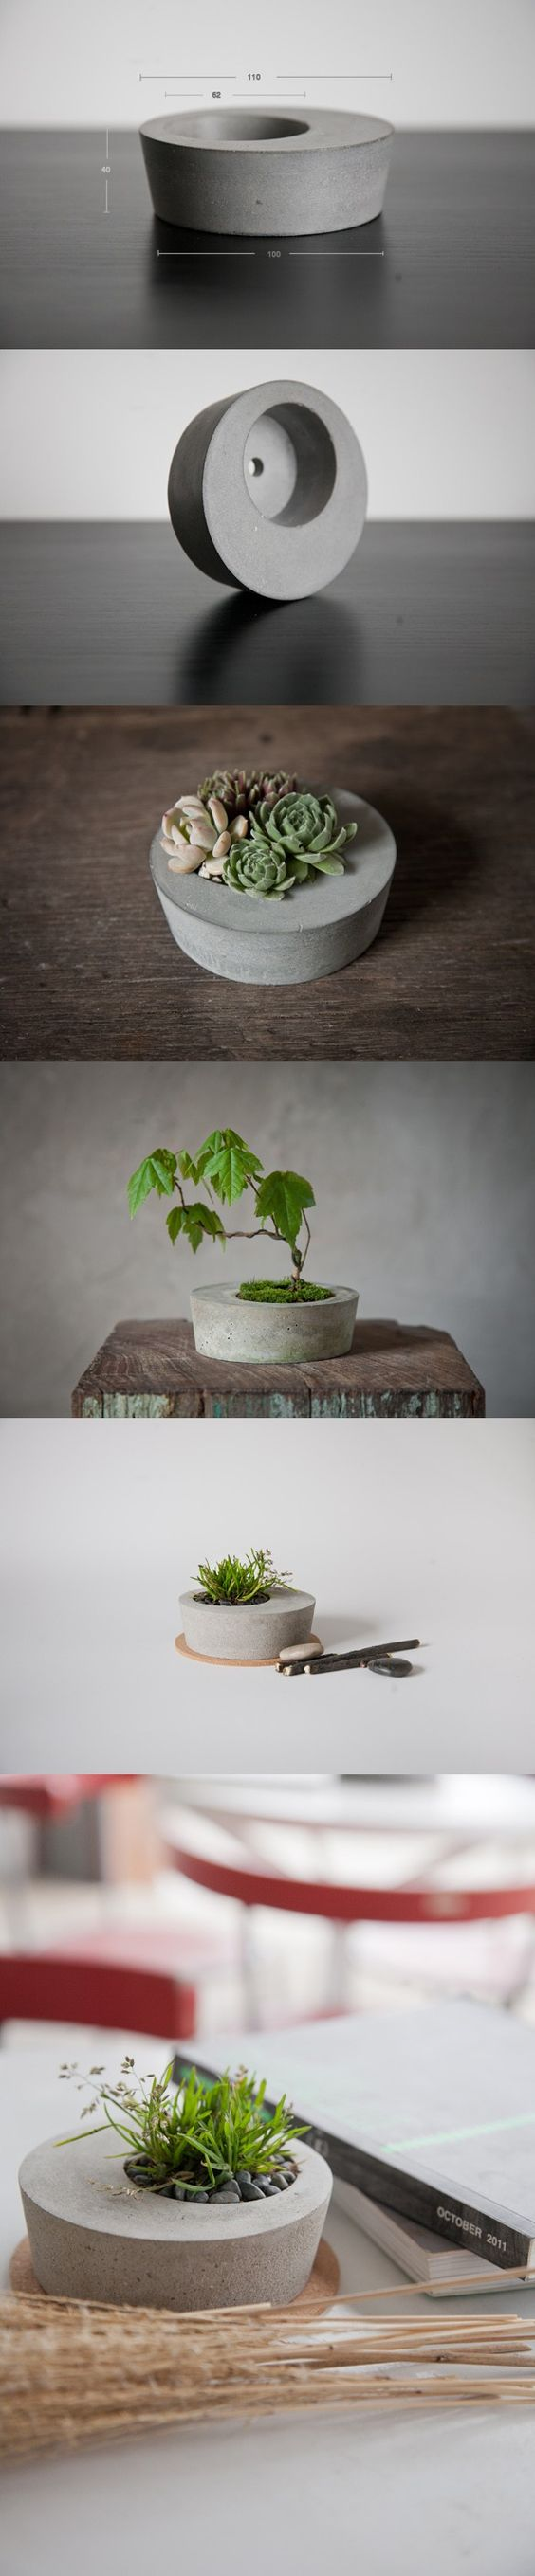 Joli pot plante en b ton diy concrete planter for Plante en pot